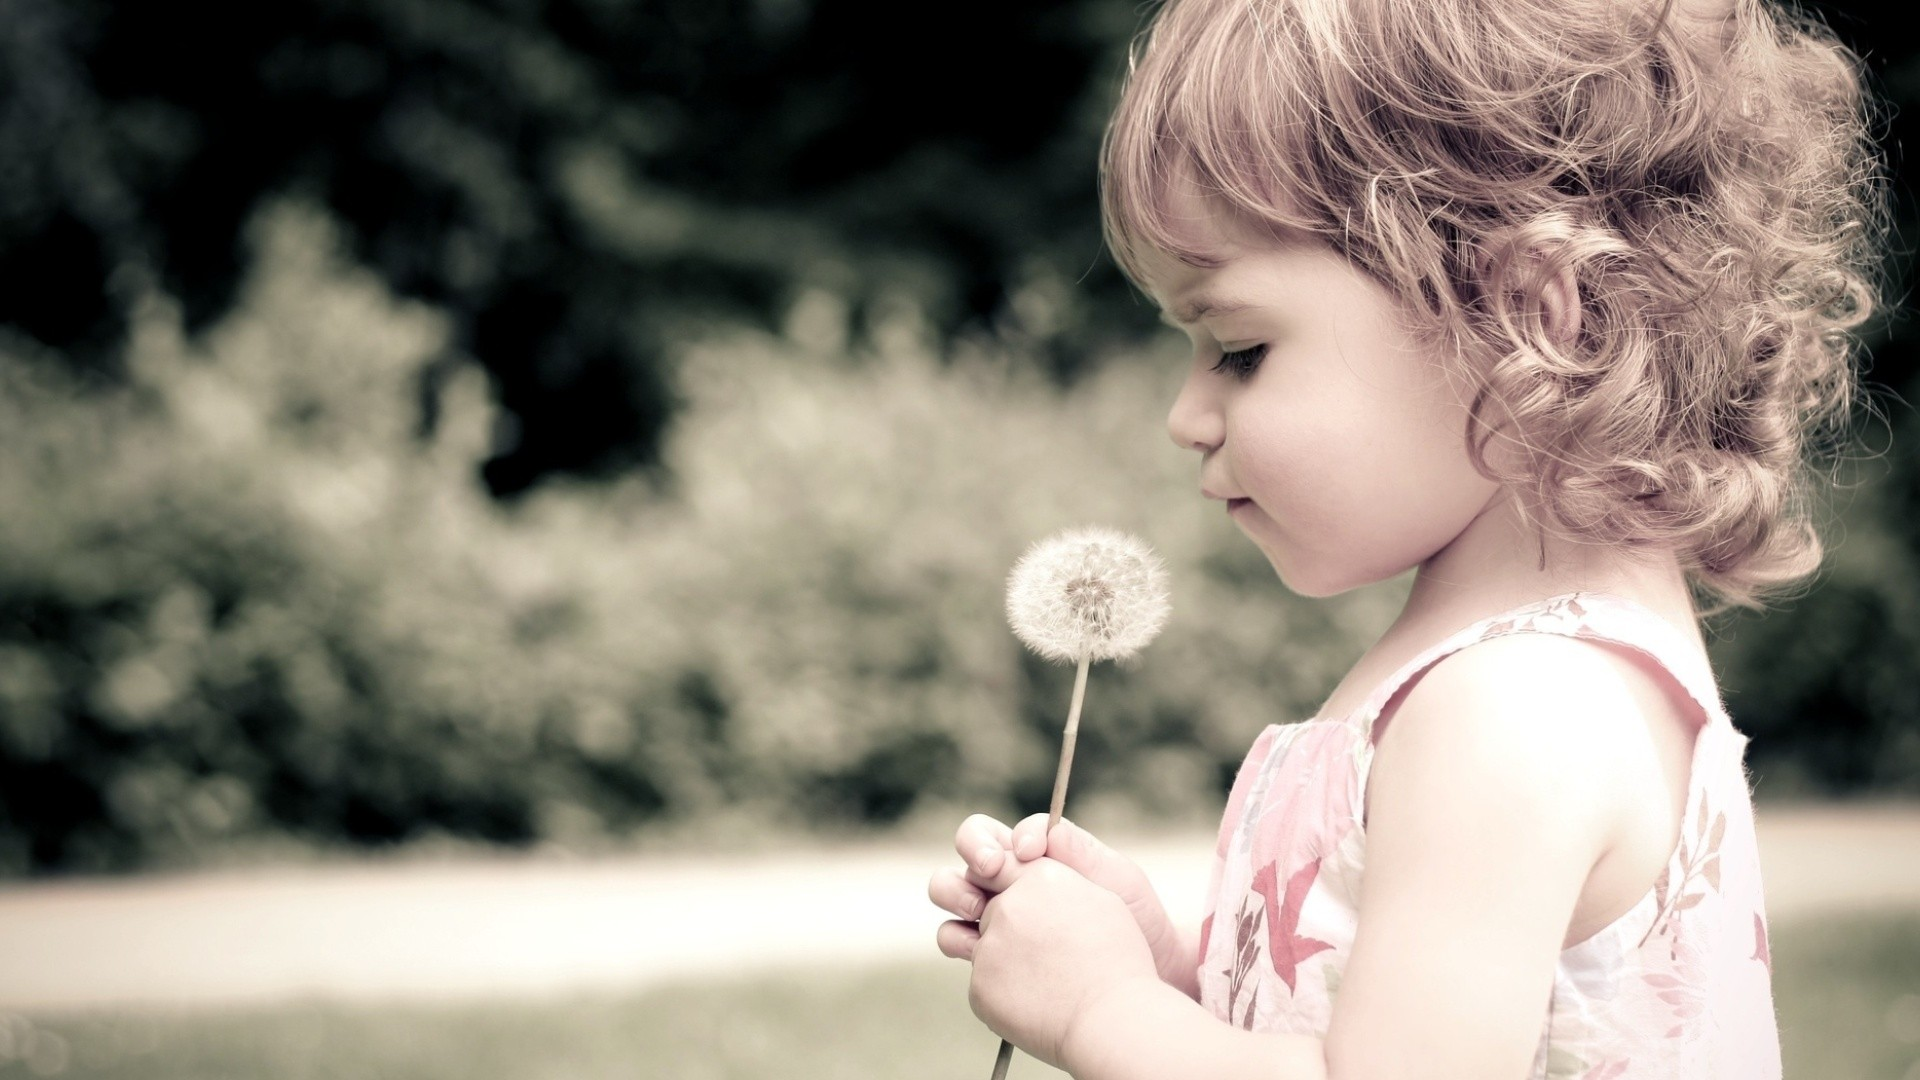 cute-baby-with-dandelion-1920%C3%971080-wallpaper-wp3604491